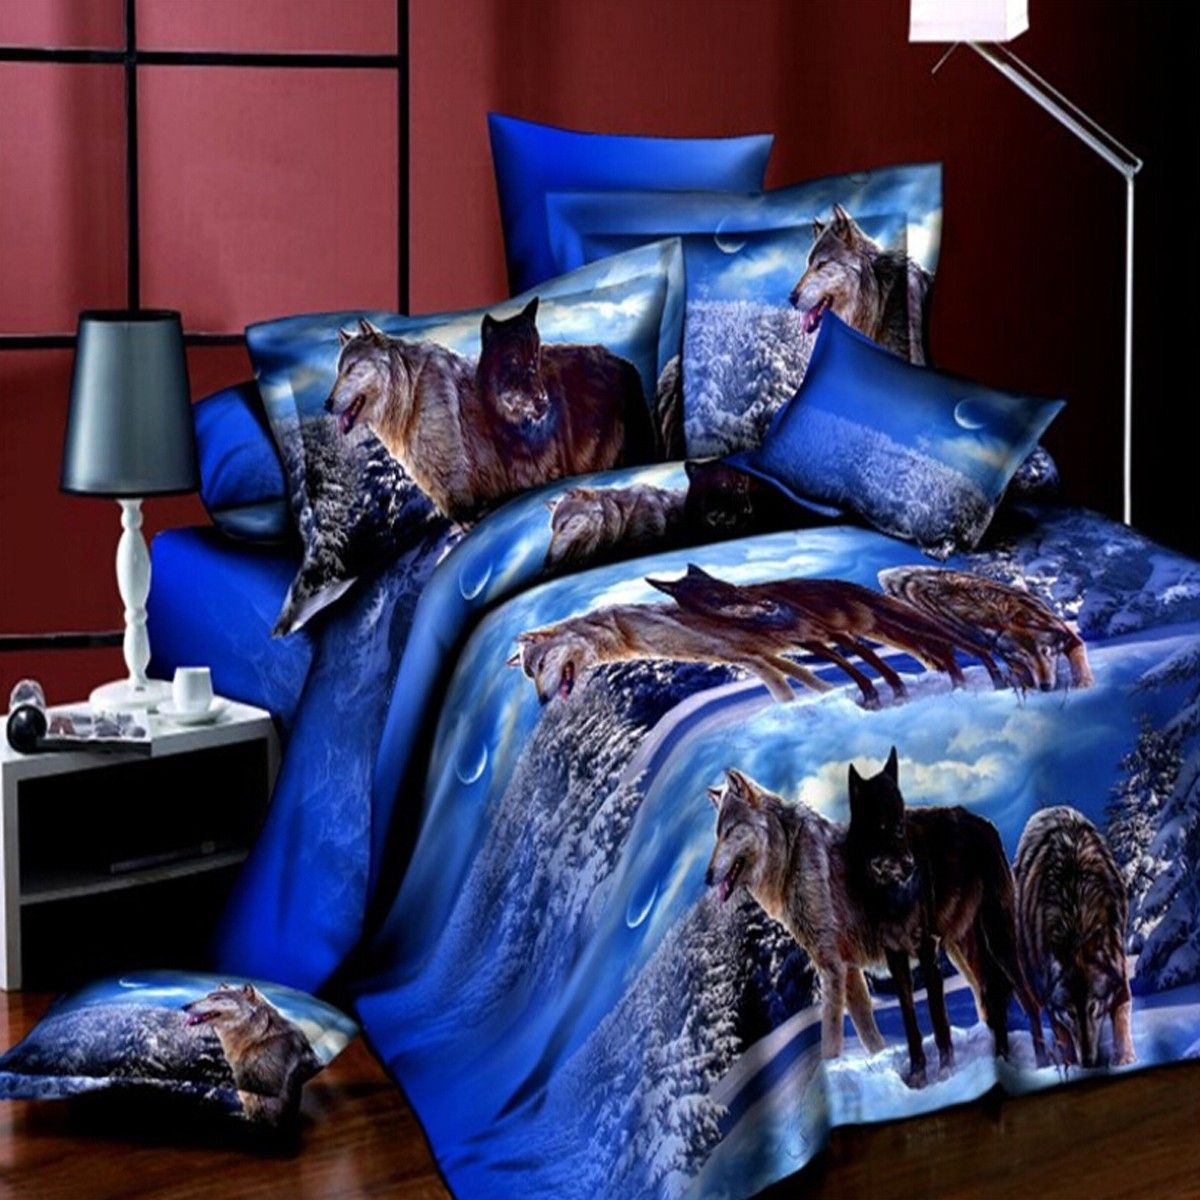 new floral bedding sets full size duvet cover bed sheet pillowcase bedclothes